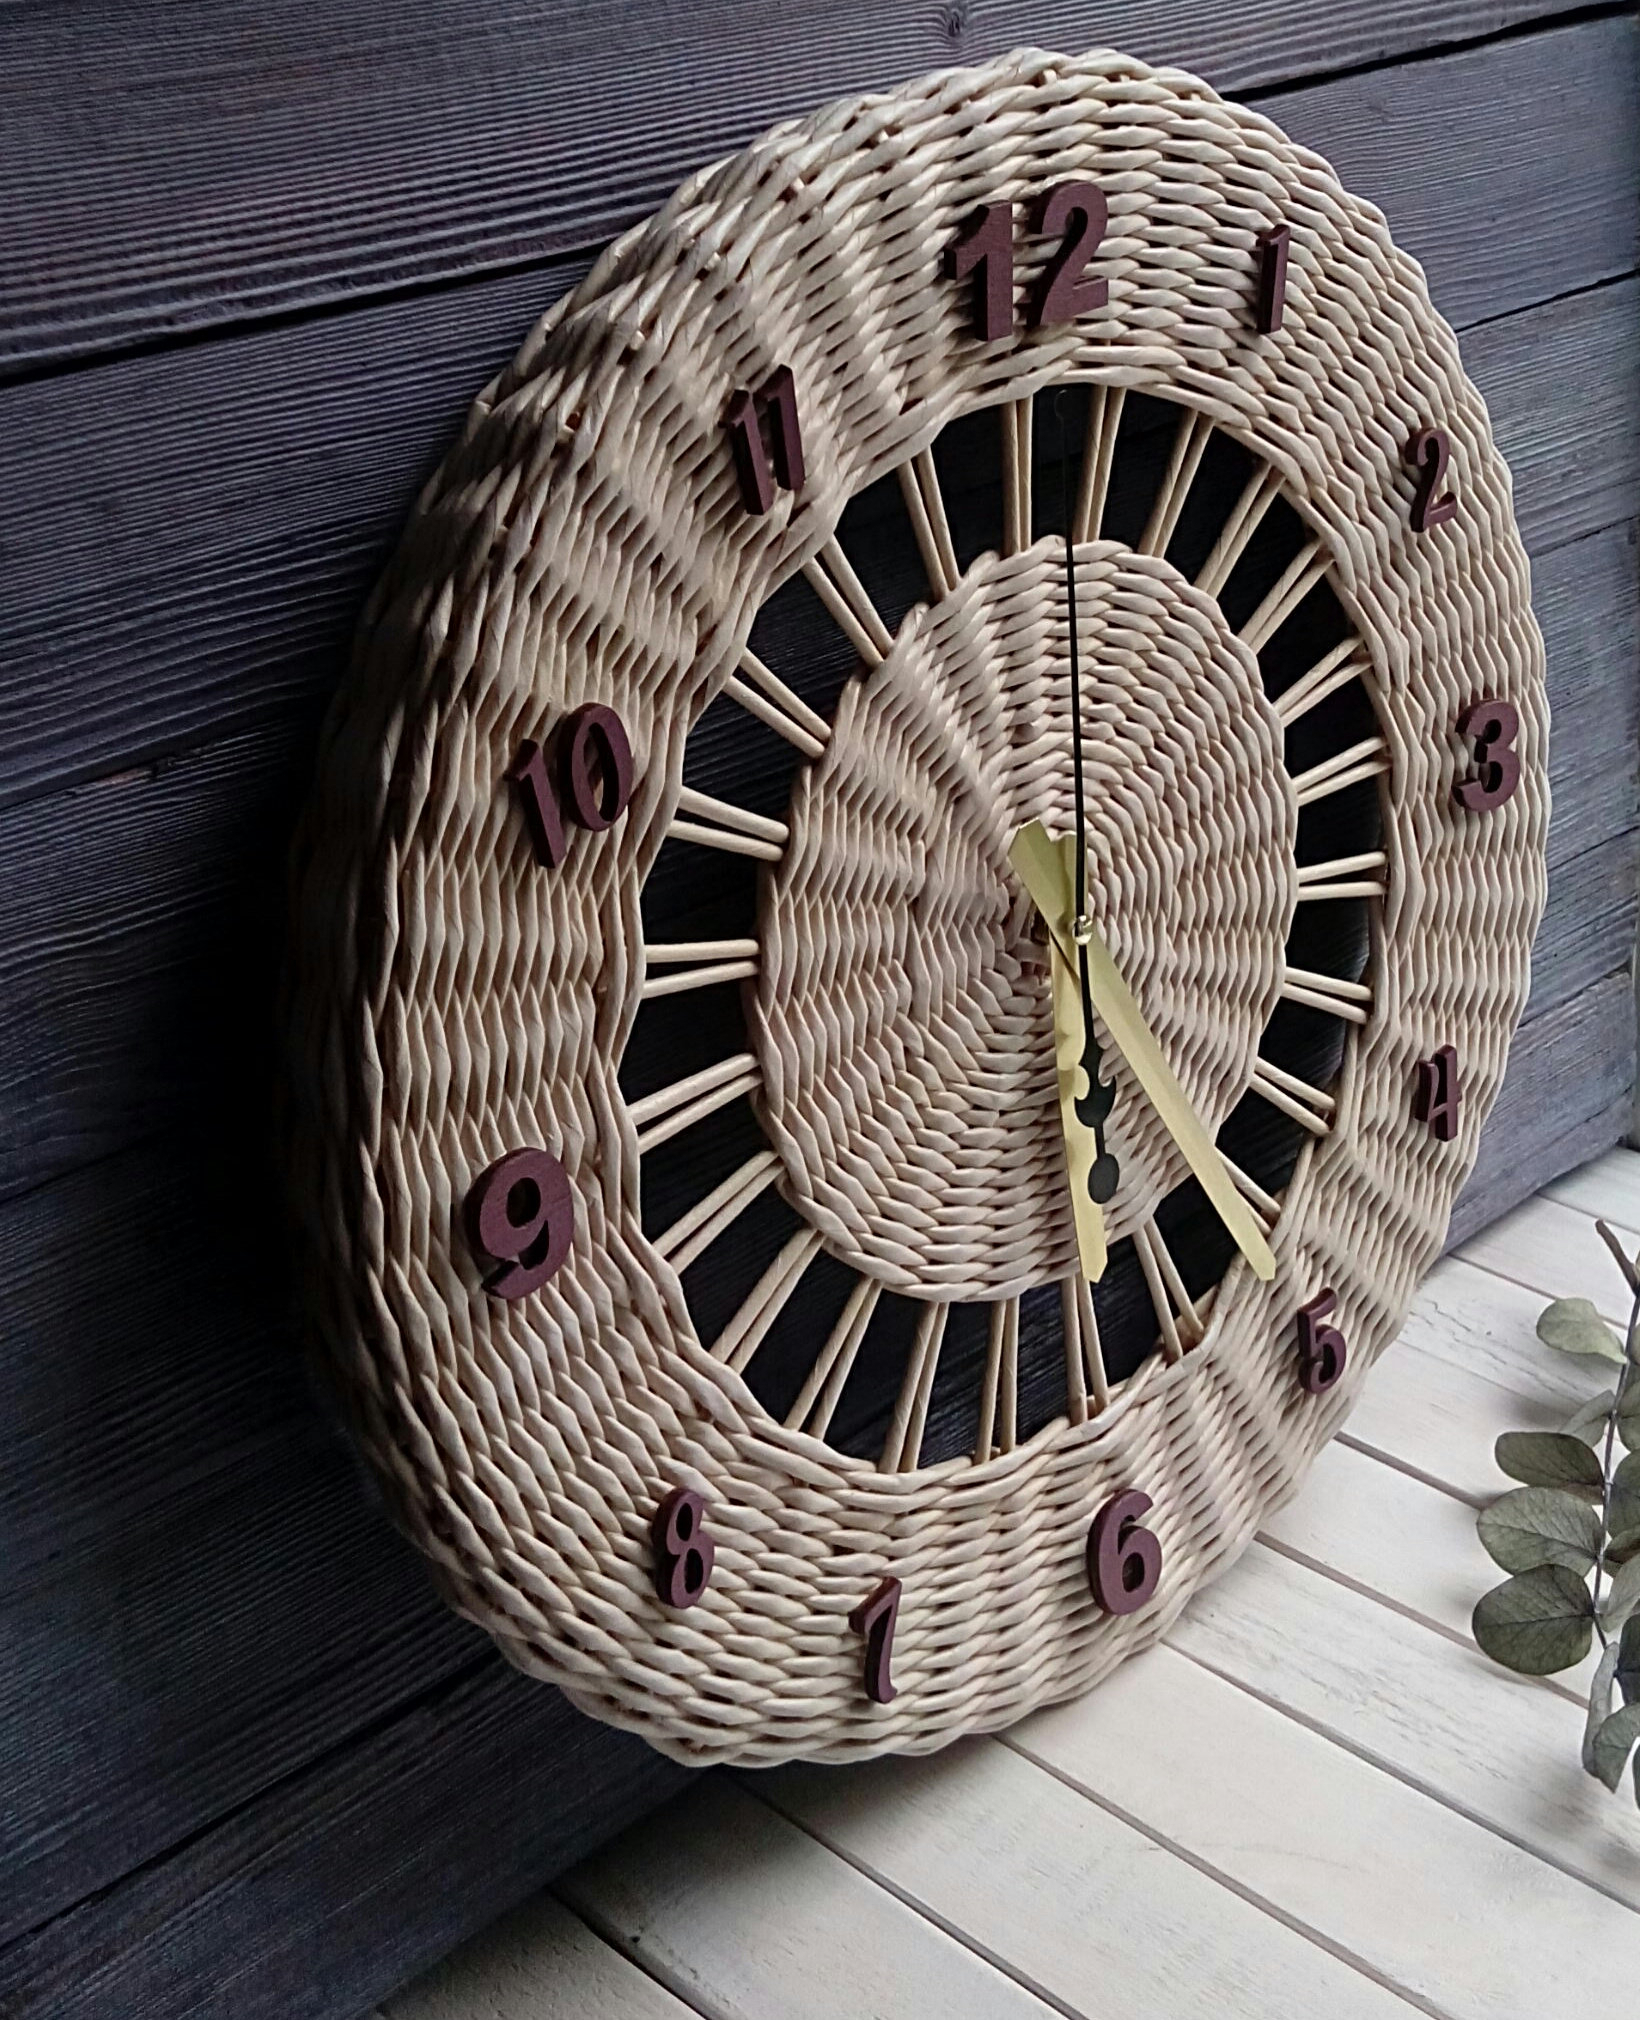 Farmhouse Wicker Wall Clock One Year Anniversary Paper Clock First  Anniversary Gift Personalized Cloc Wicker Wall Decor Large Wall Clock within 4 Piece Handwoven Wheel Wall Decor Sets (Image 15 of 30)